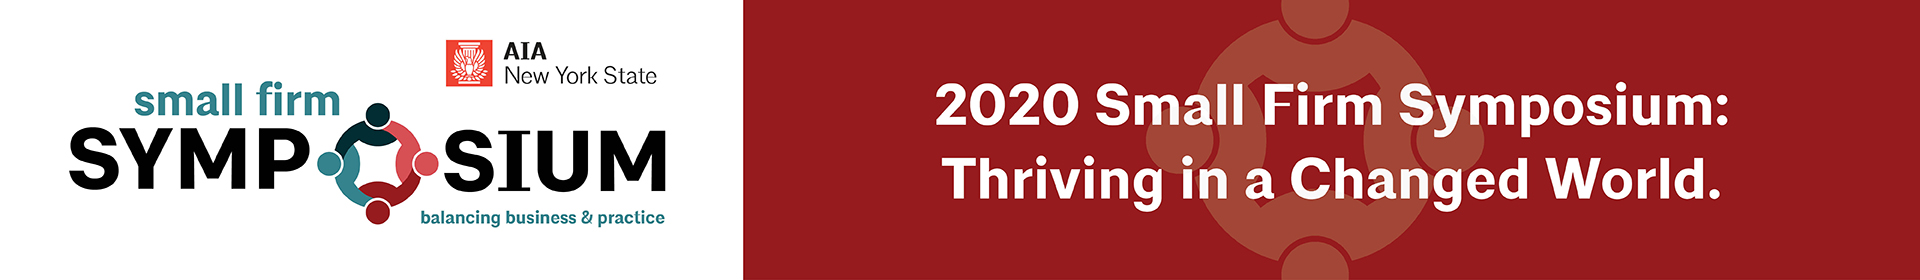 2020 Small Firm Symposium Event Banner